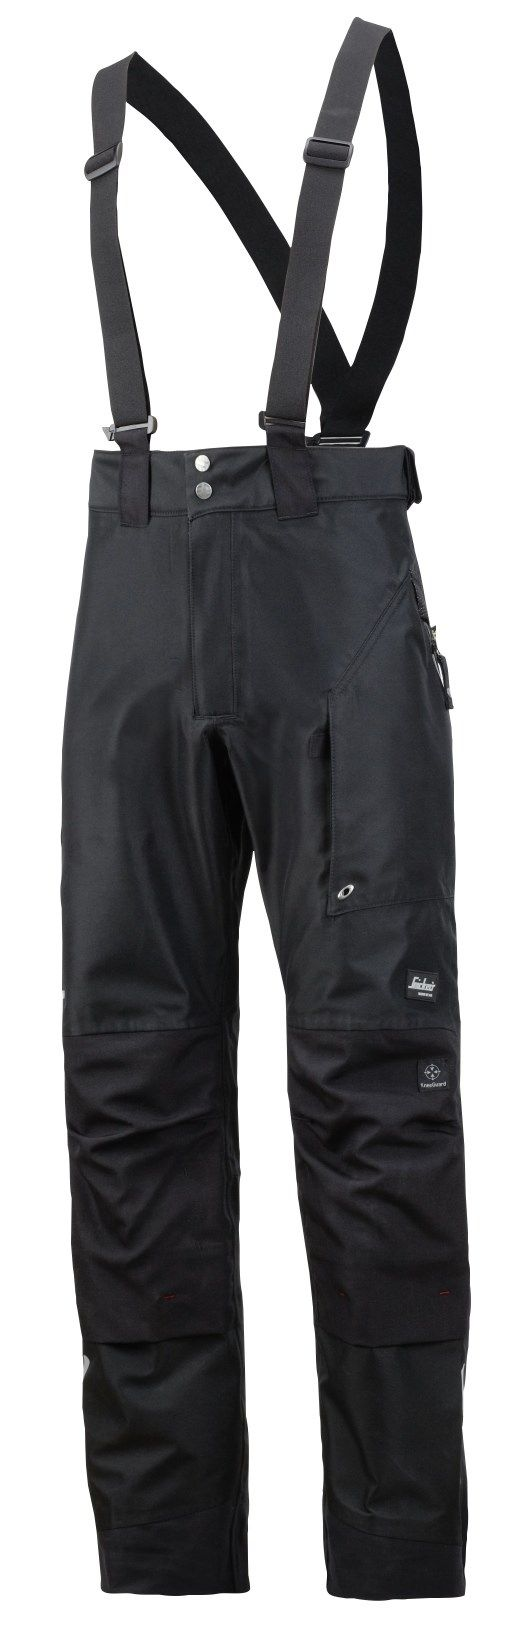 For extreme protection all day long. Advanced and high-functionality work #trousers in reinforced 3-layer GORE-TEX® fabric, giving you the ultimate in dry and ventilated working comfort. All day, any #weather. Conforms to EN 343. - Snickers Workwear Artnr. 3888